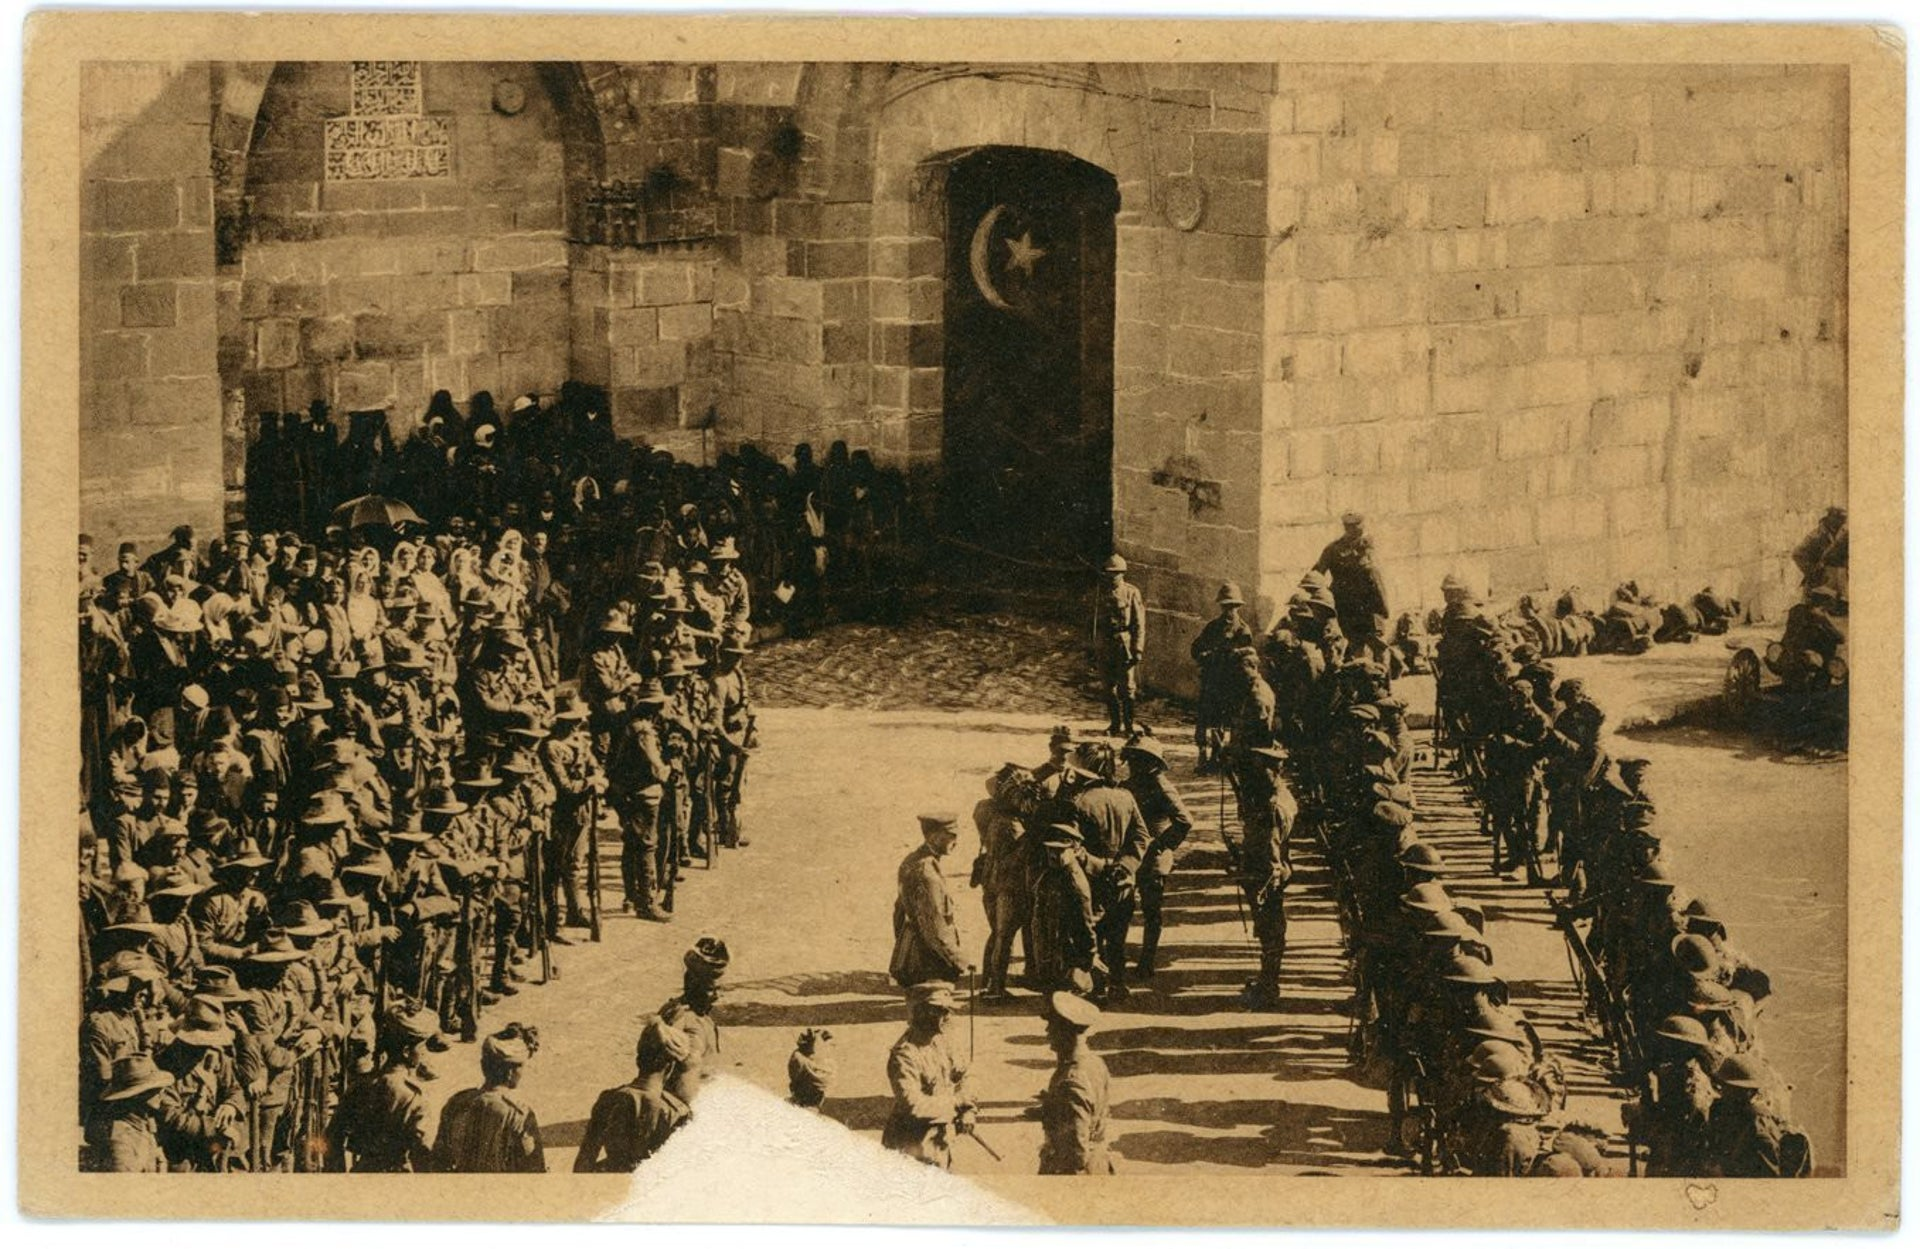 From the exhibition: A photograph of General Allenby's enters Jerusalem through Jaffa Gate.